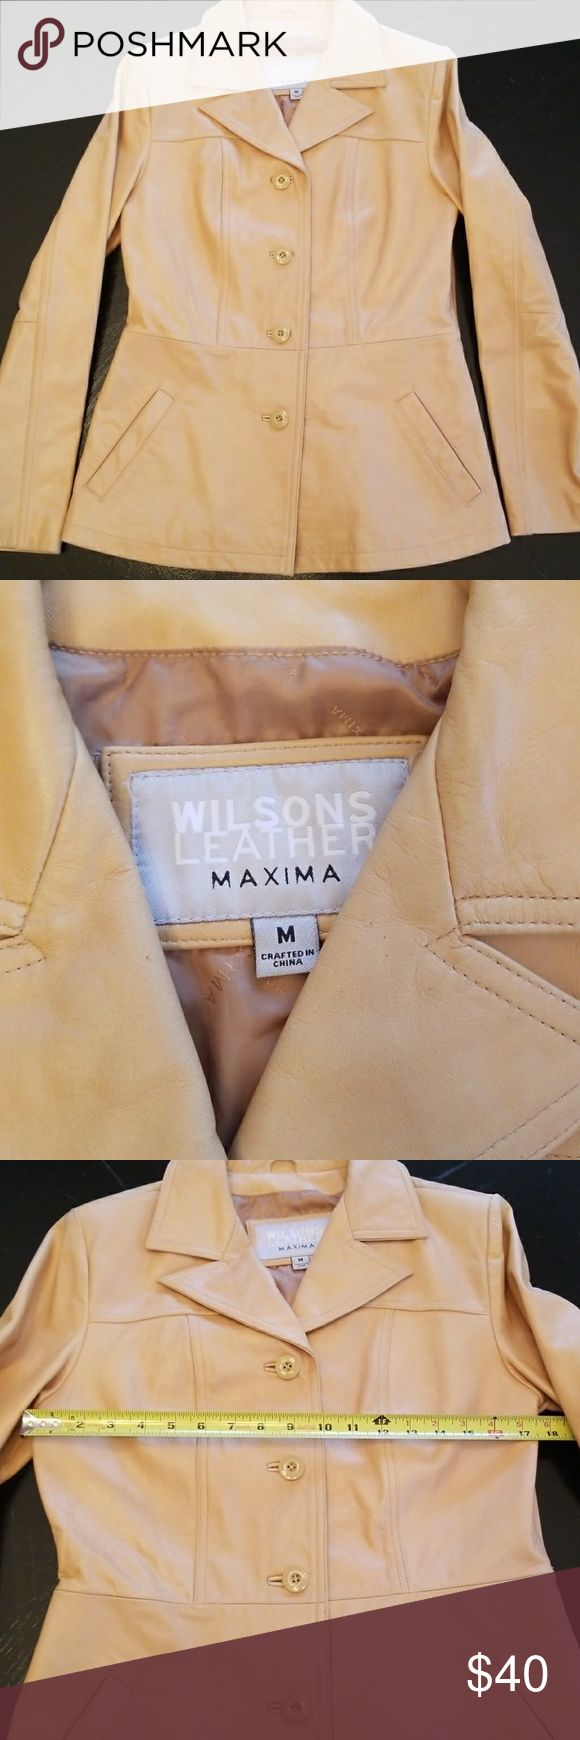 Wilsons Leather Jacket Tan Wilsons Leather Jacket Maxima Approx measurements in pics Has a few spots needs to be cleaned but in good condition Wilsons Leather Jackets & Coats